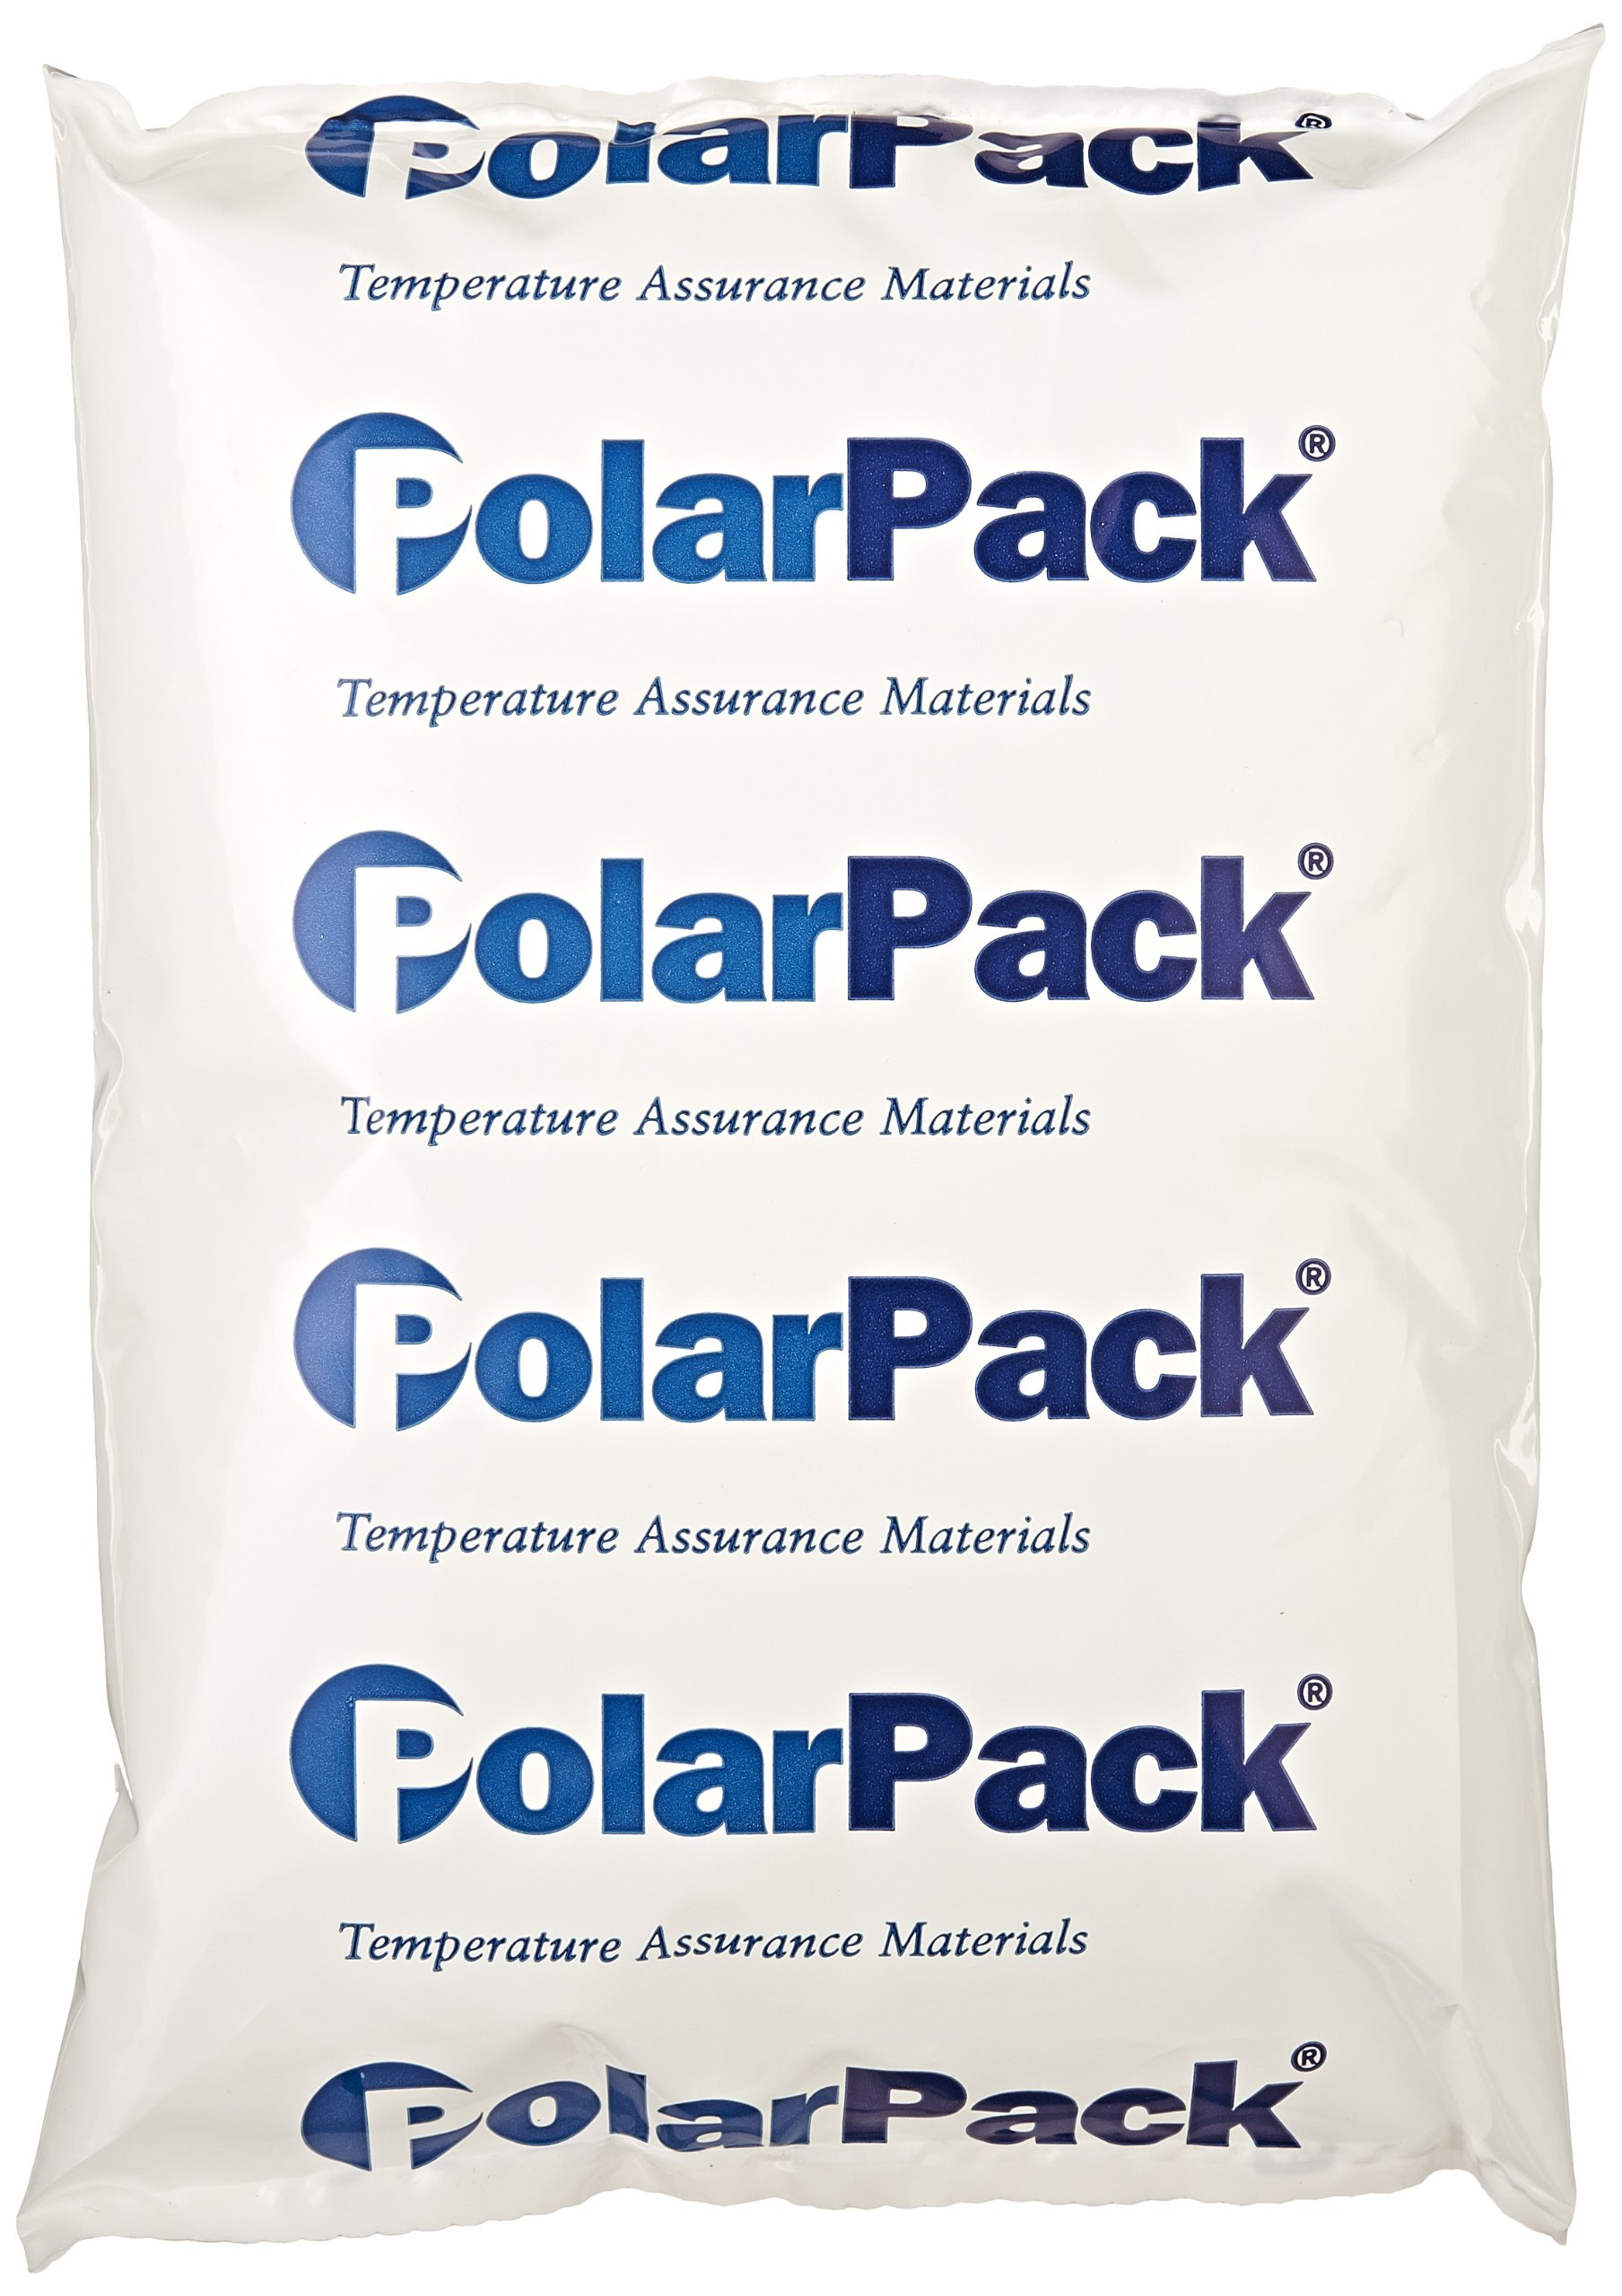 ThermoSafe Polar Pack PP24 Refrigerant Gel Pack, 0°C Temperature, 8'' L x 5.5'' W x 1.25'' H (Case of 24)